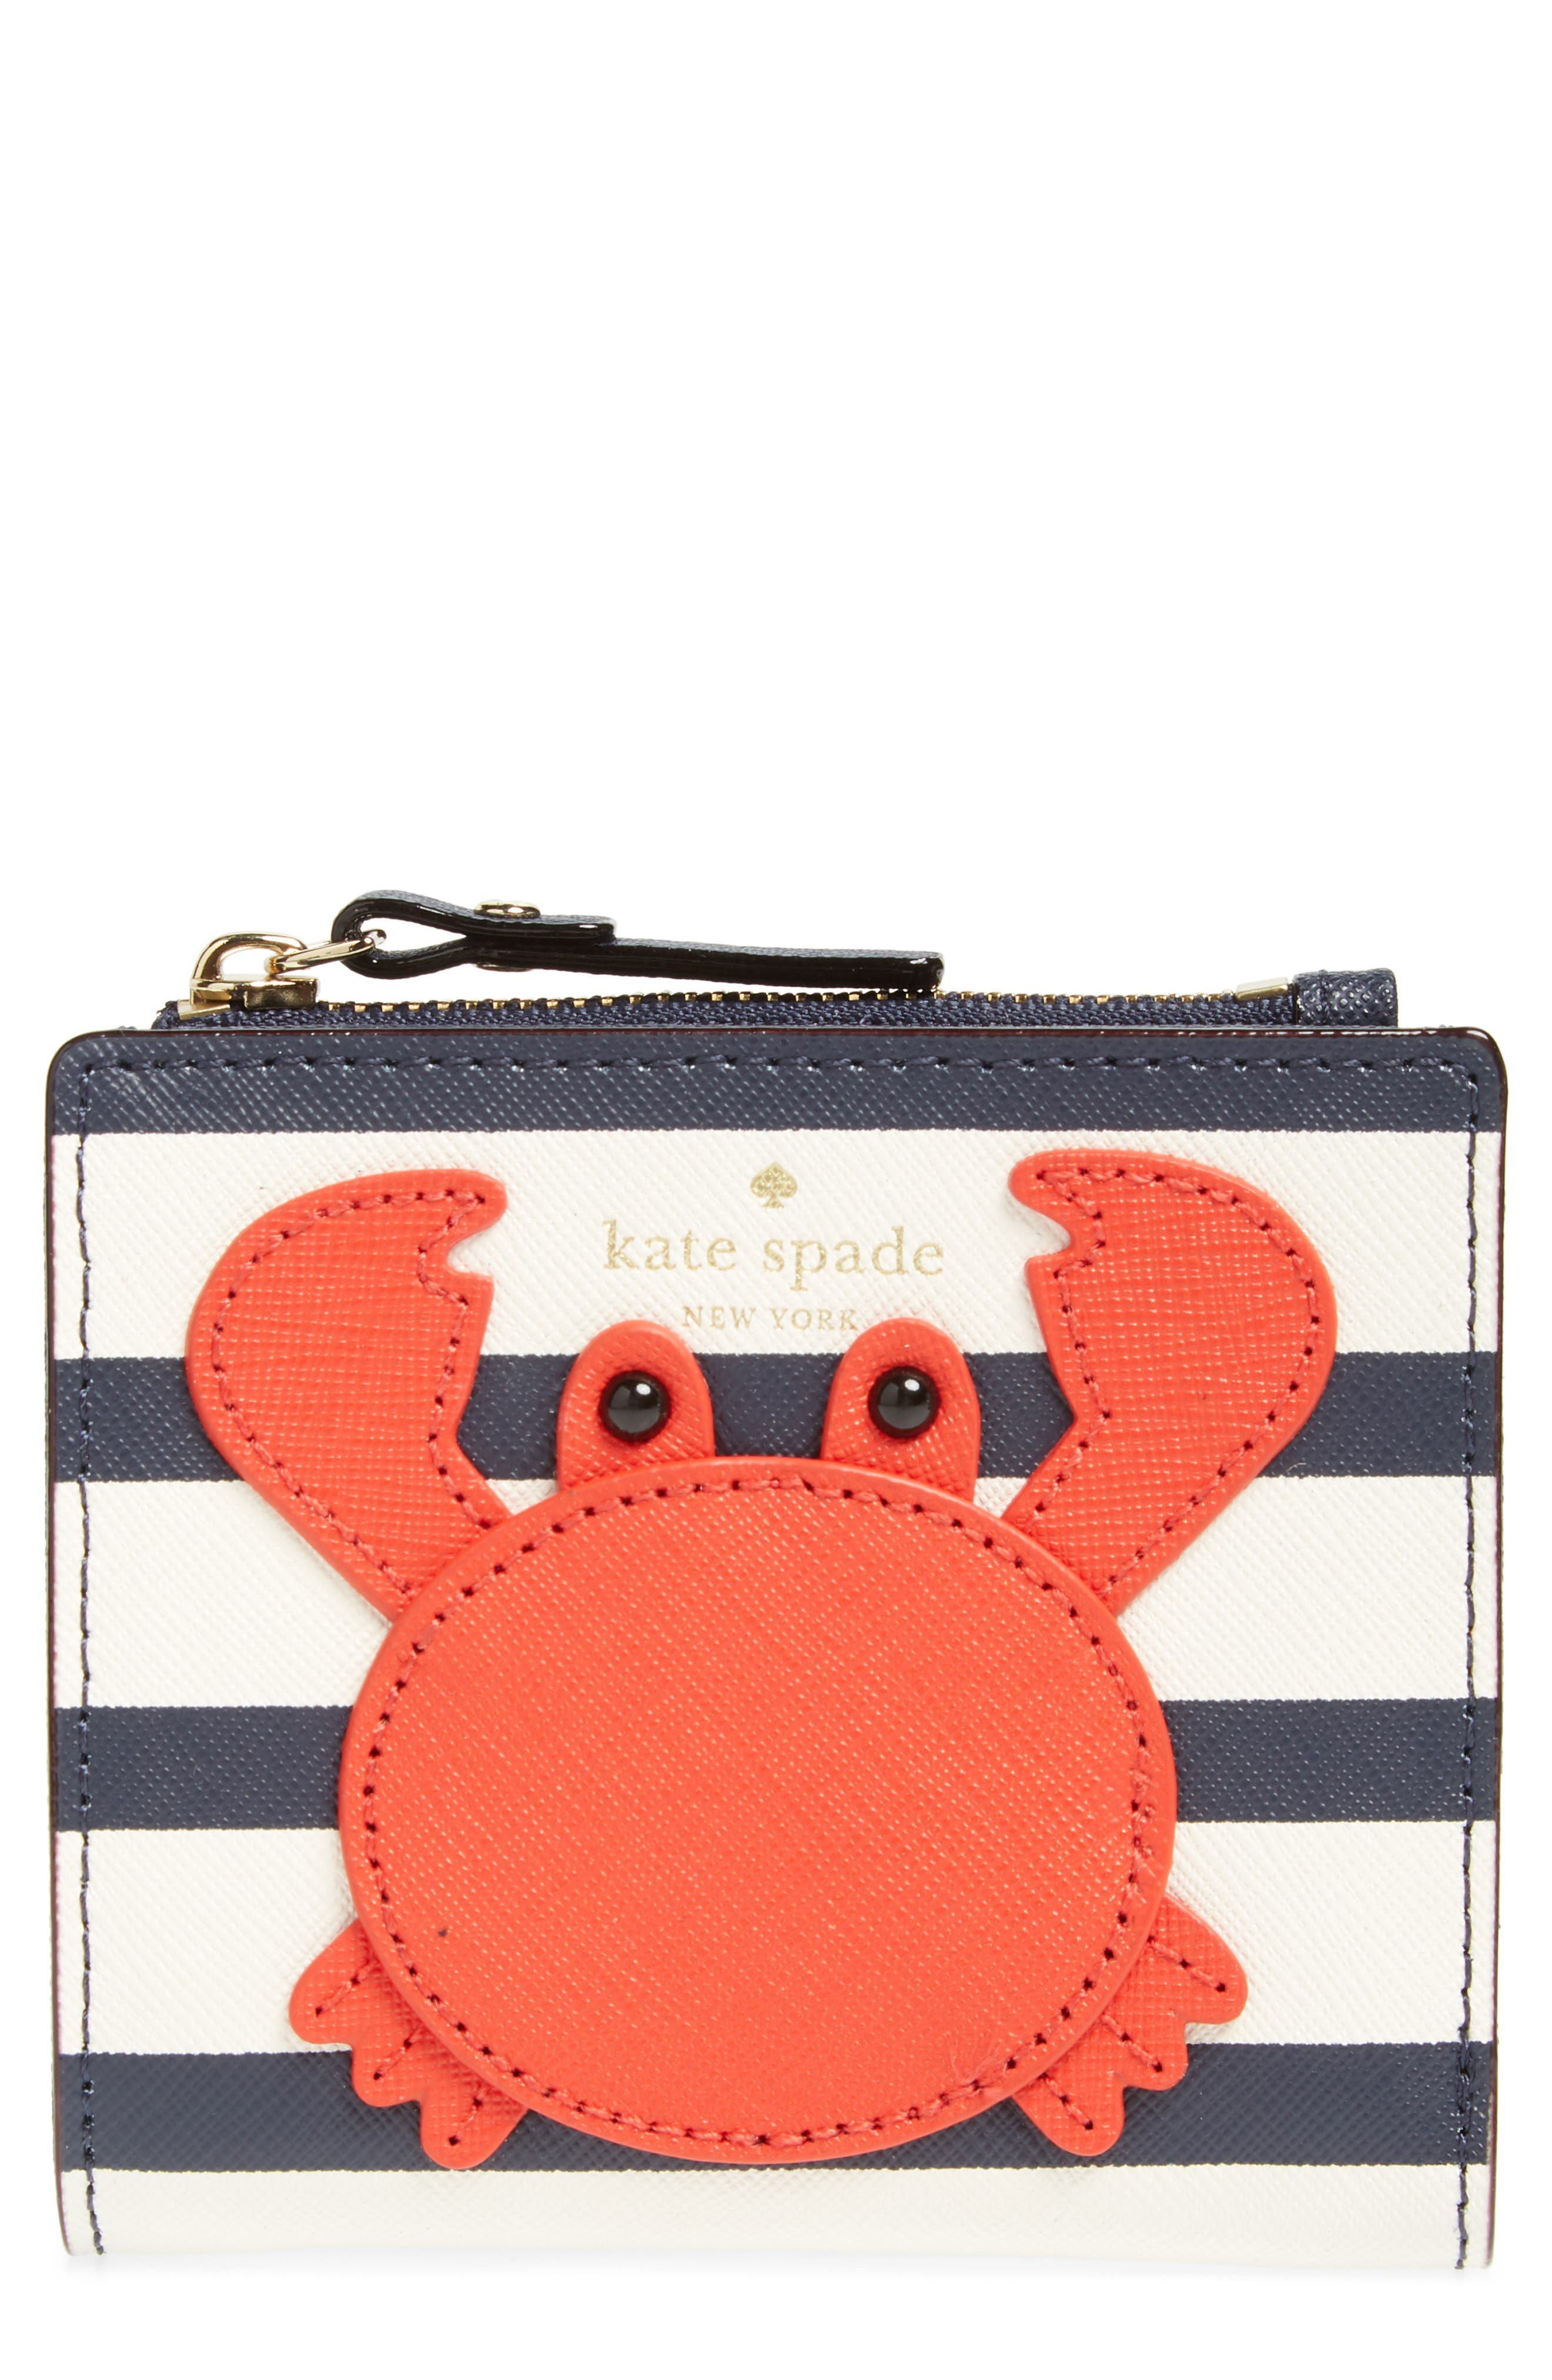 shore thing - stripe adalyn leather wallet,                         Main,                         color, 600